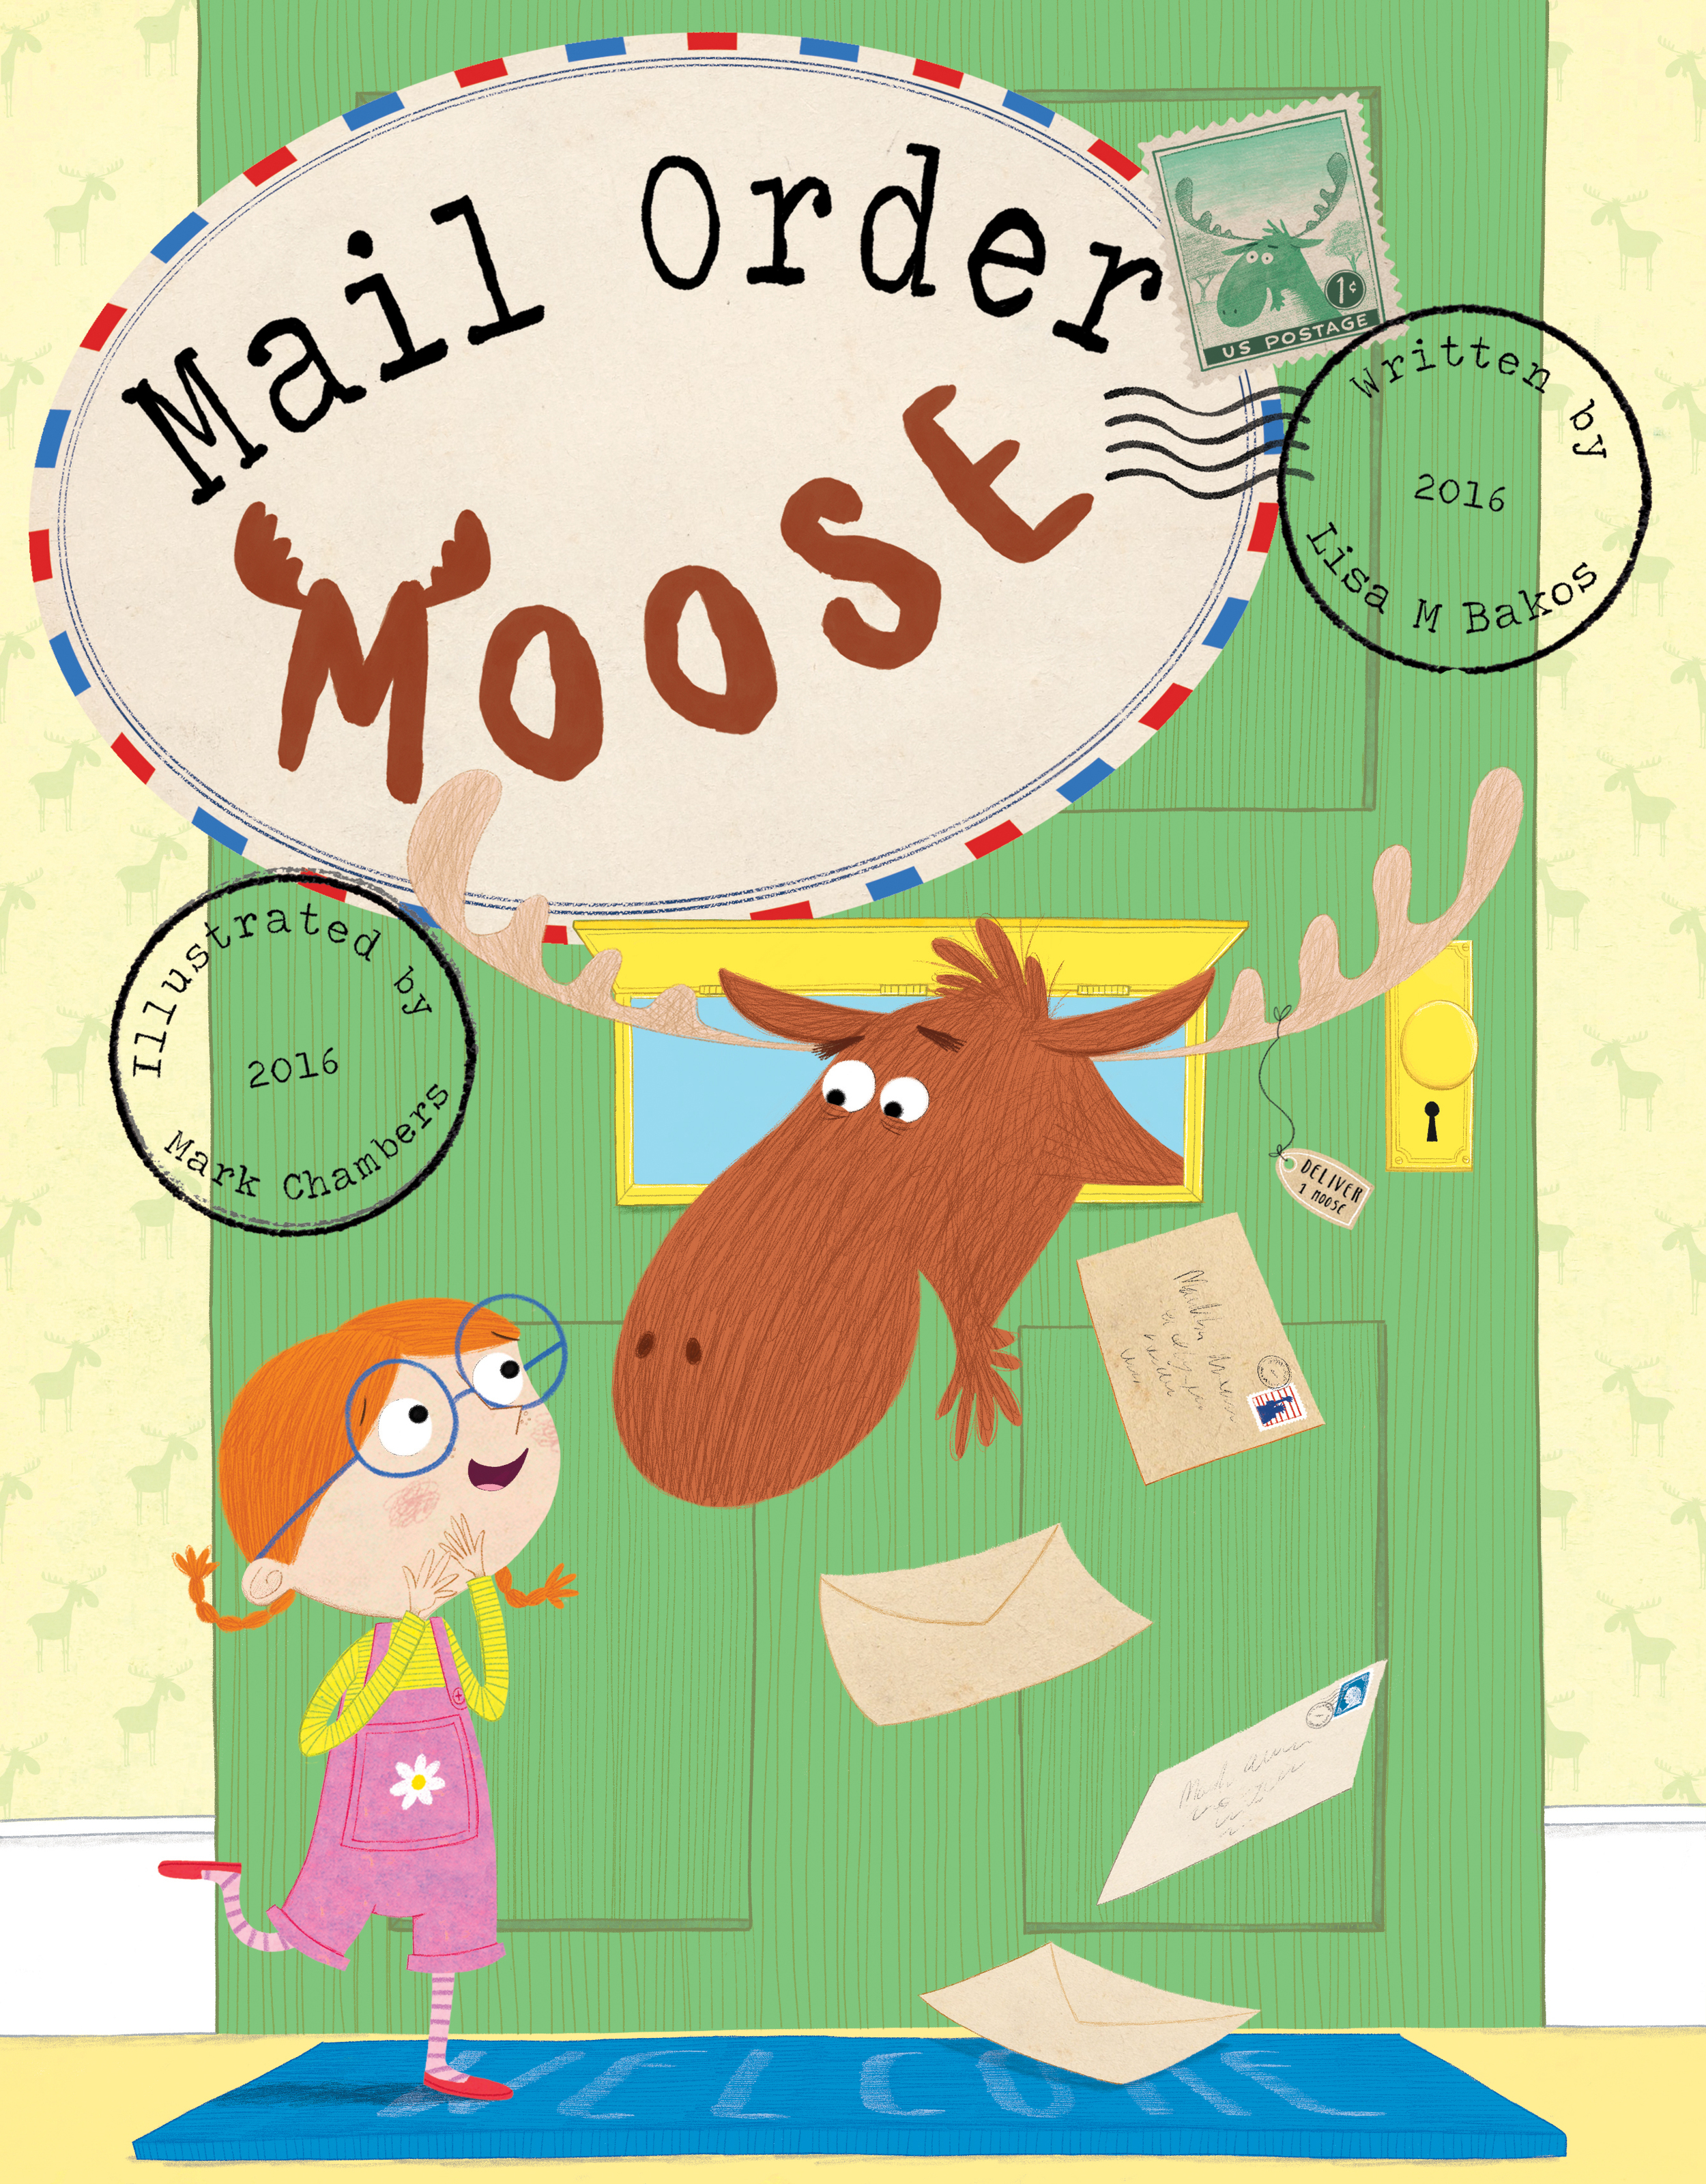 I also went to colour on one other idea I had, to see what it would look like and to give the publisher a choice just in case. While this looked alright it was felt that we needed to see the whole moose and not just his head stuck through a letterbox. The type that I created was working well though so we used this in the subsequent rounds of cover designs as well as the stamp concept.